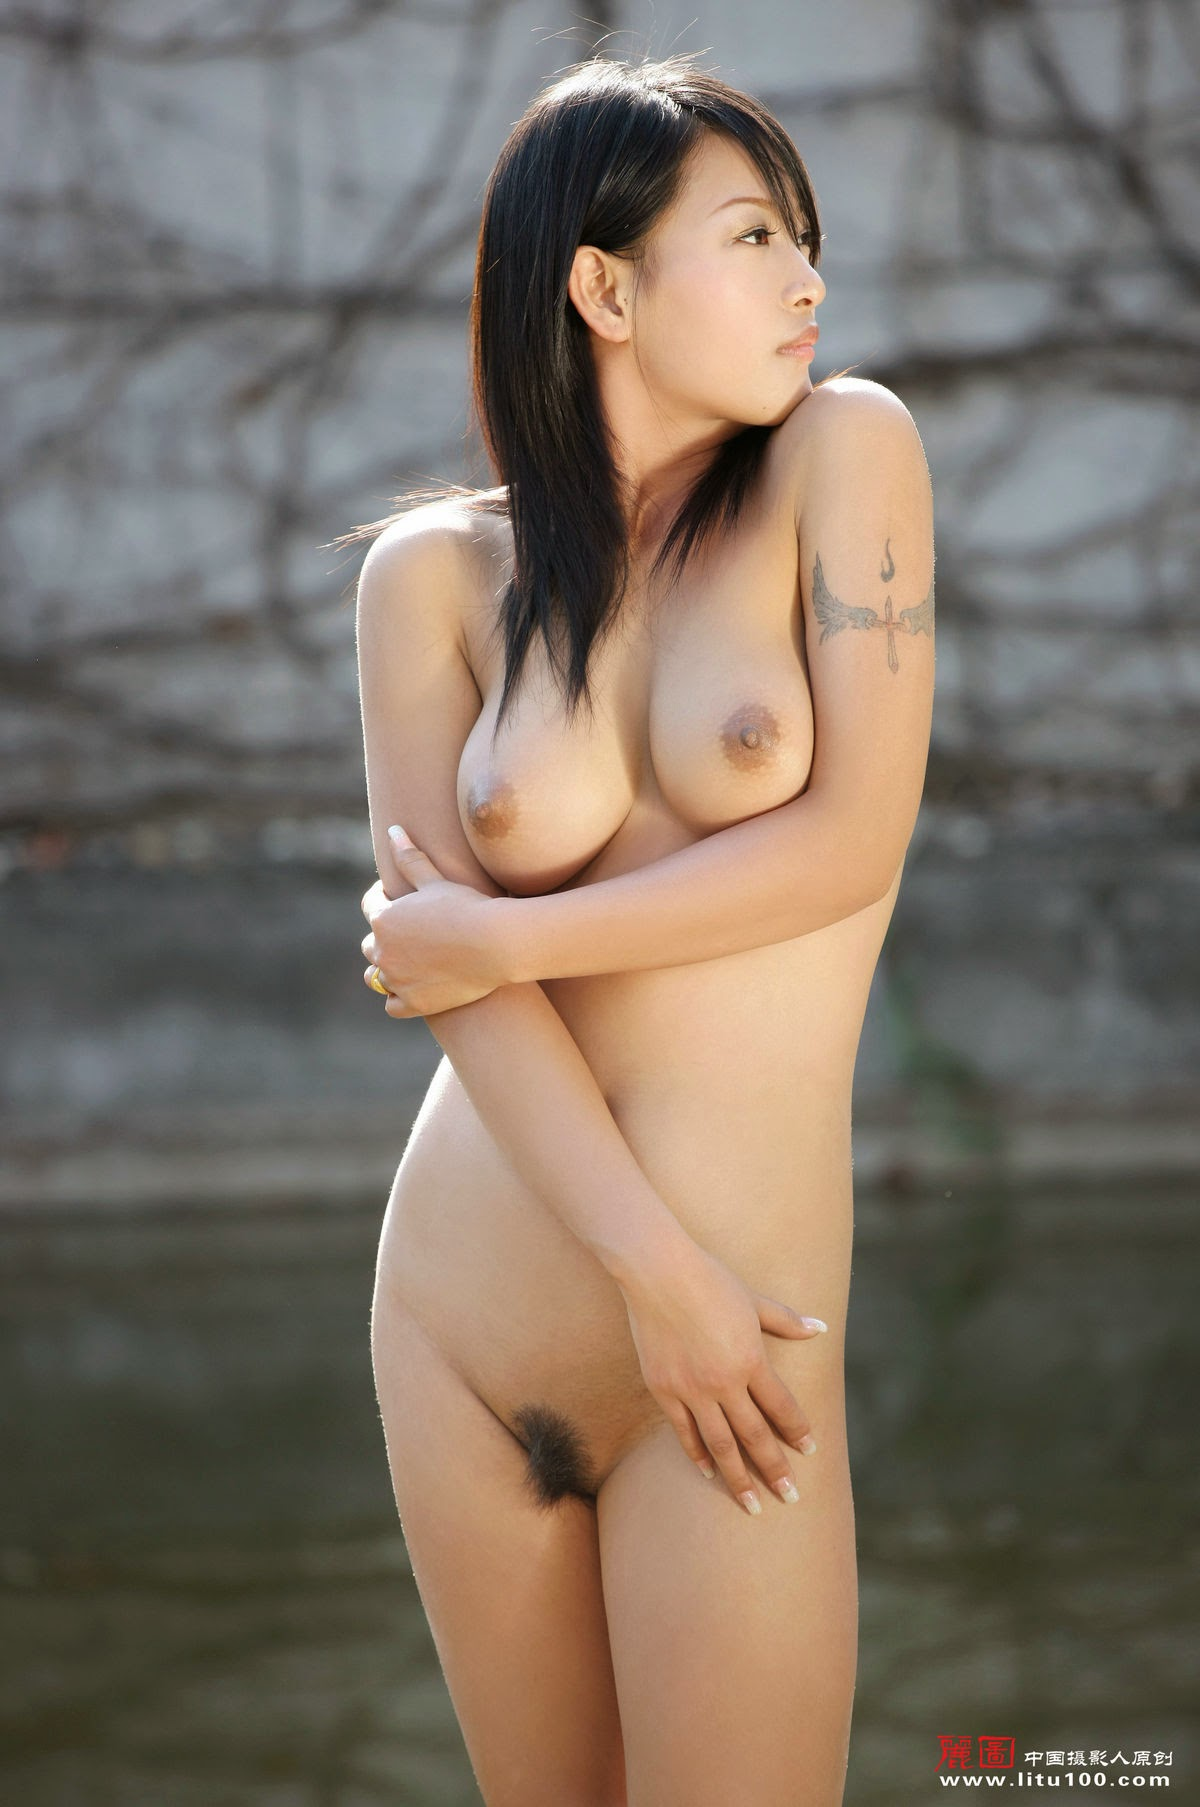 litu 100 archives: Chinese Nude Model You Xuan 03 [Litu100] | chinesenudeart photos